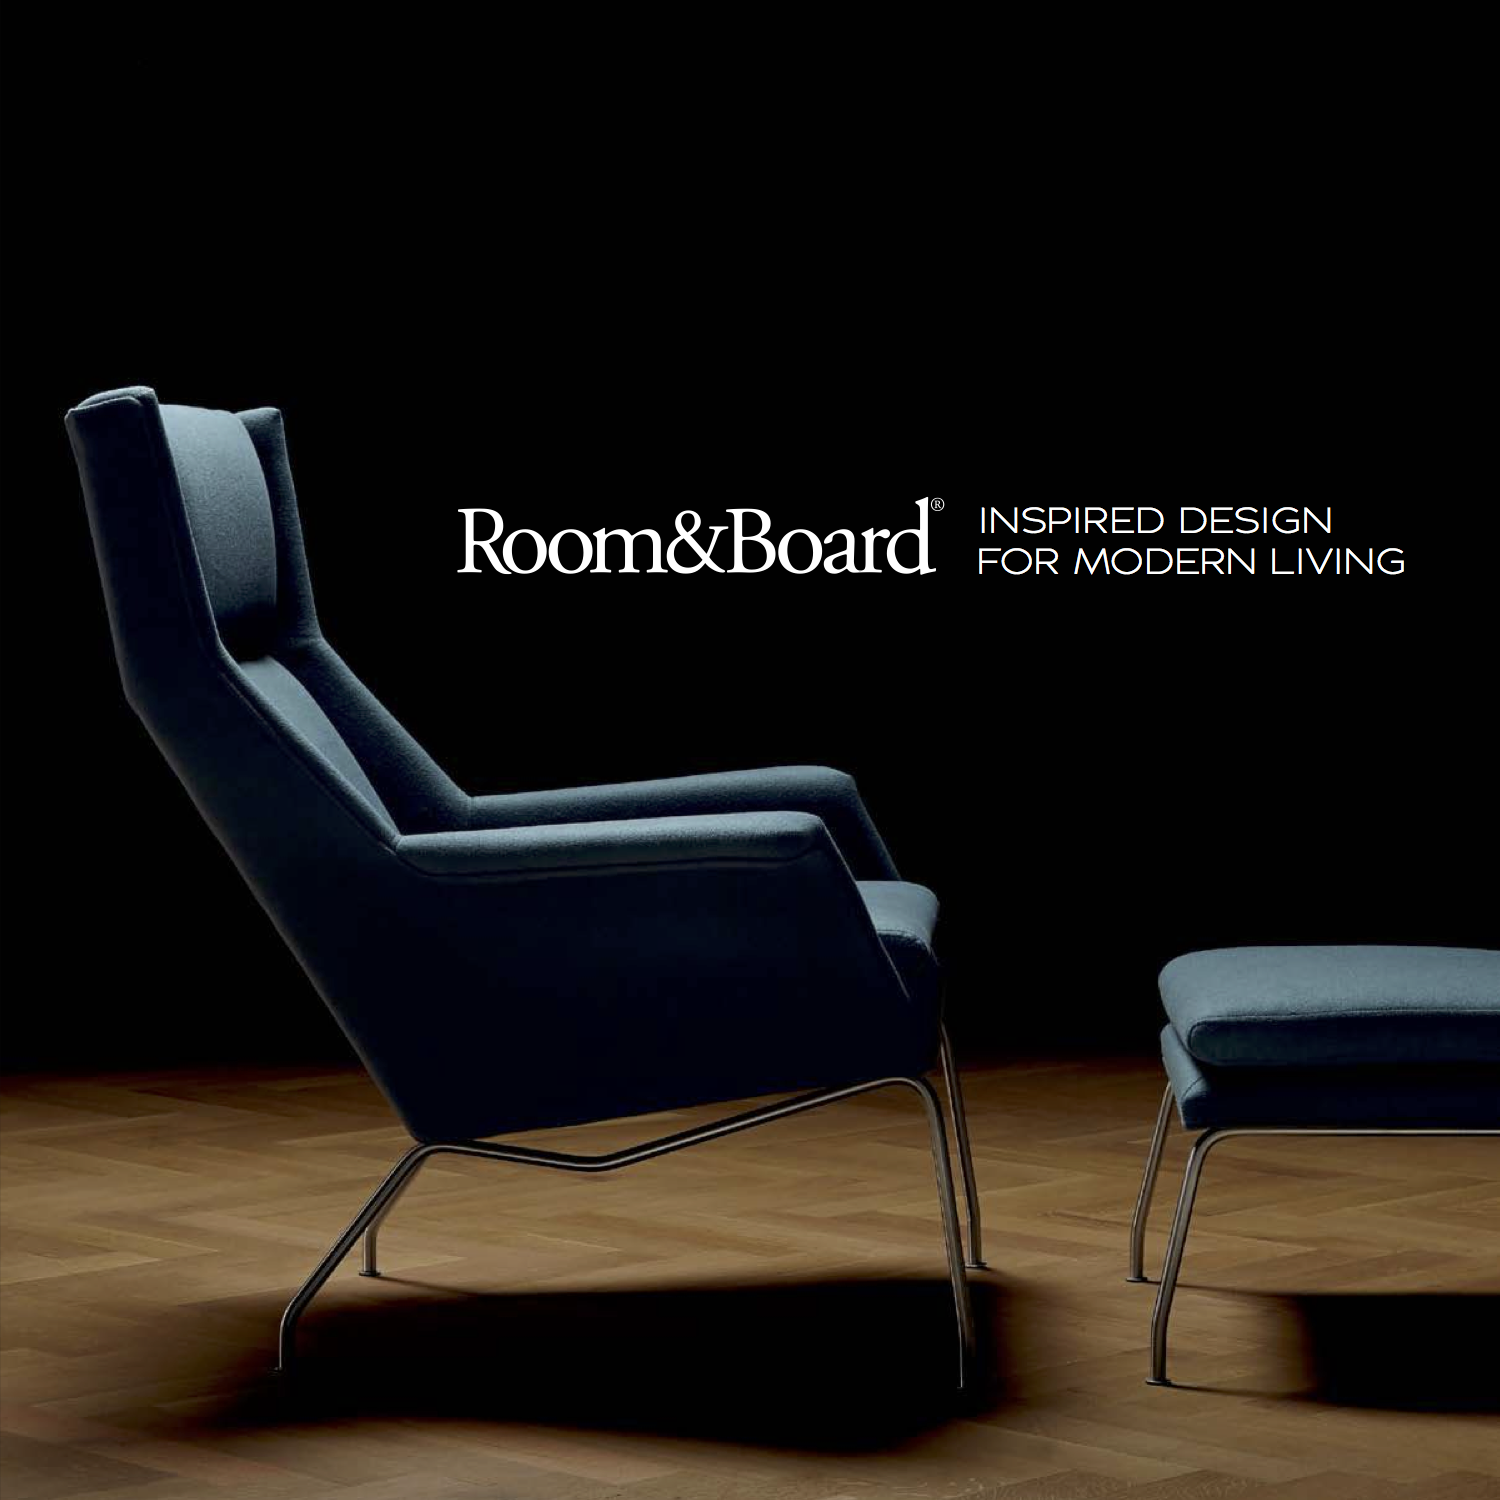 room-and-board-2014-catalog-cover.png